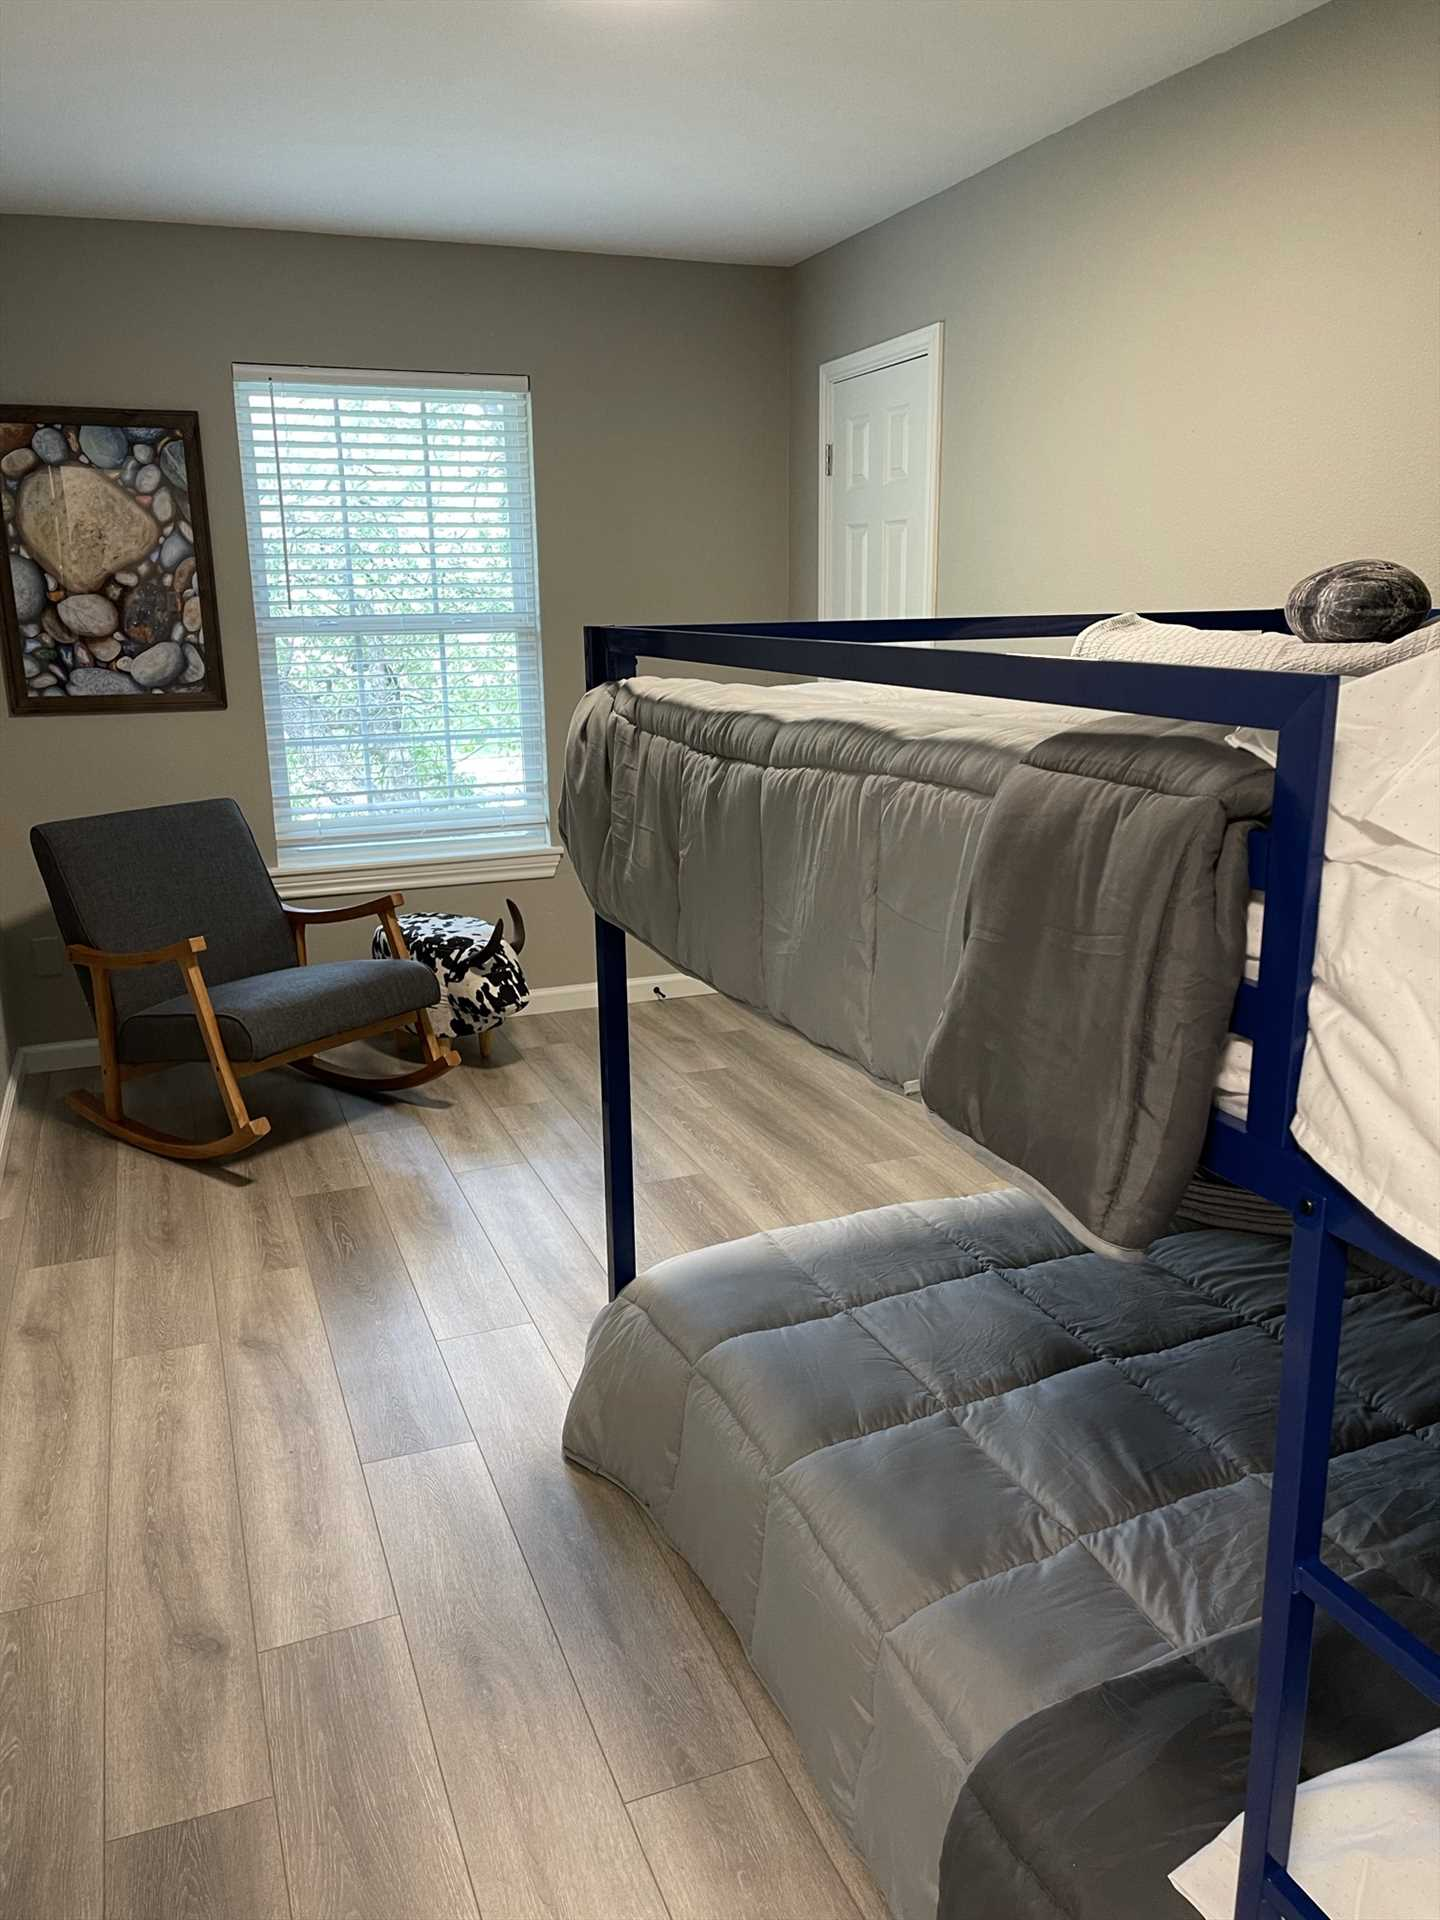 Full-sized bunk beds sleep up to four guests in the third bedroom. Save the upper bunks for the kids!